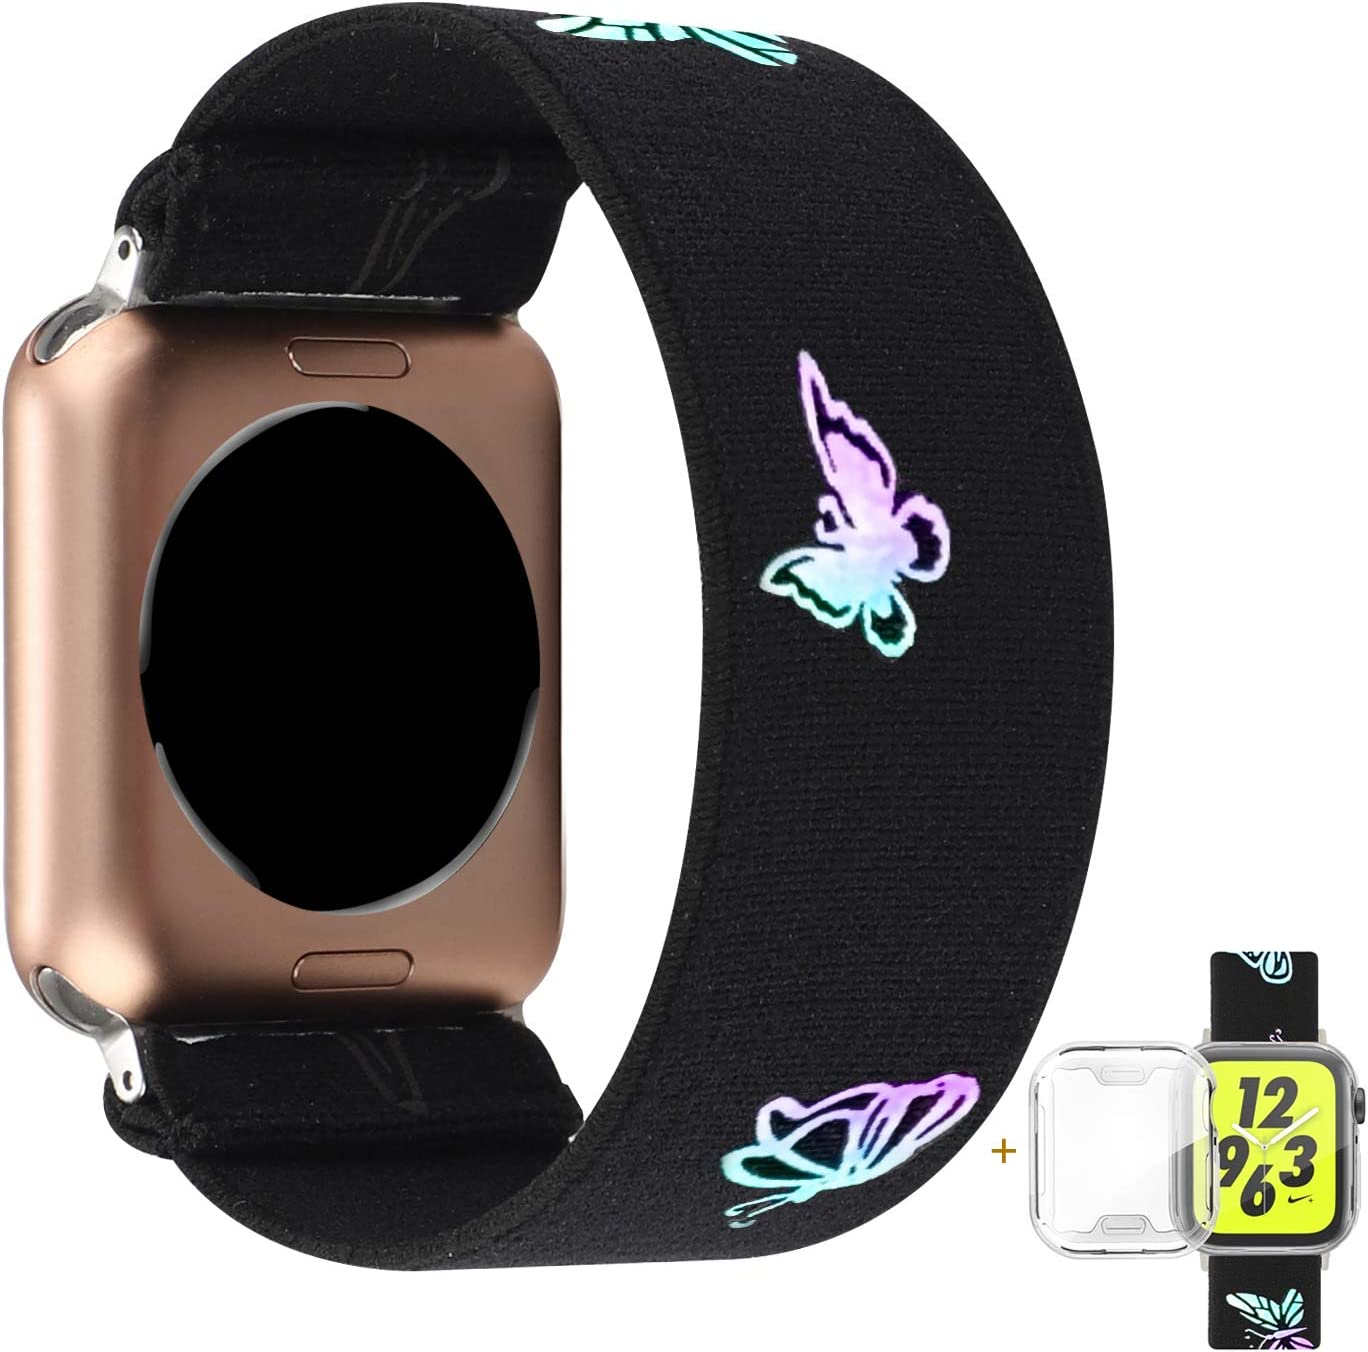 YOSWAN Compatible with Apple Watch Band 38mm 40mm Elastic Soft Nylon Solo Loop Starp Scrunchy Wristband, Women Men Cute Comfy Athletic Stretchy Bracelet Replacement Loop for iWatch SE Series 6 5 4 3 2 1 (Black Butterfly, 38mm/40mm L Size)